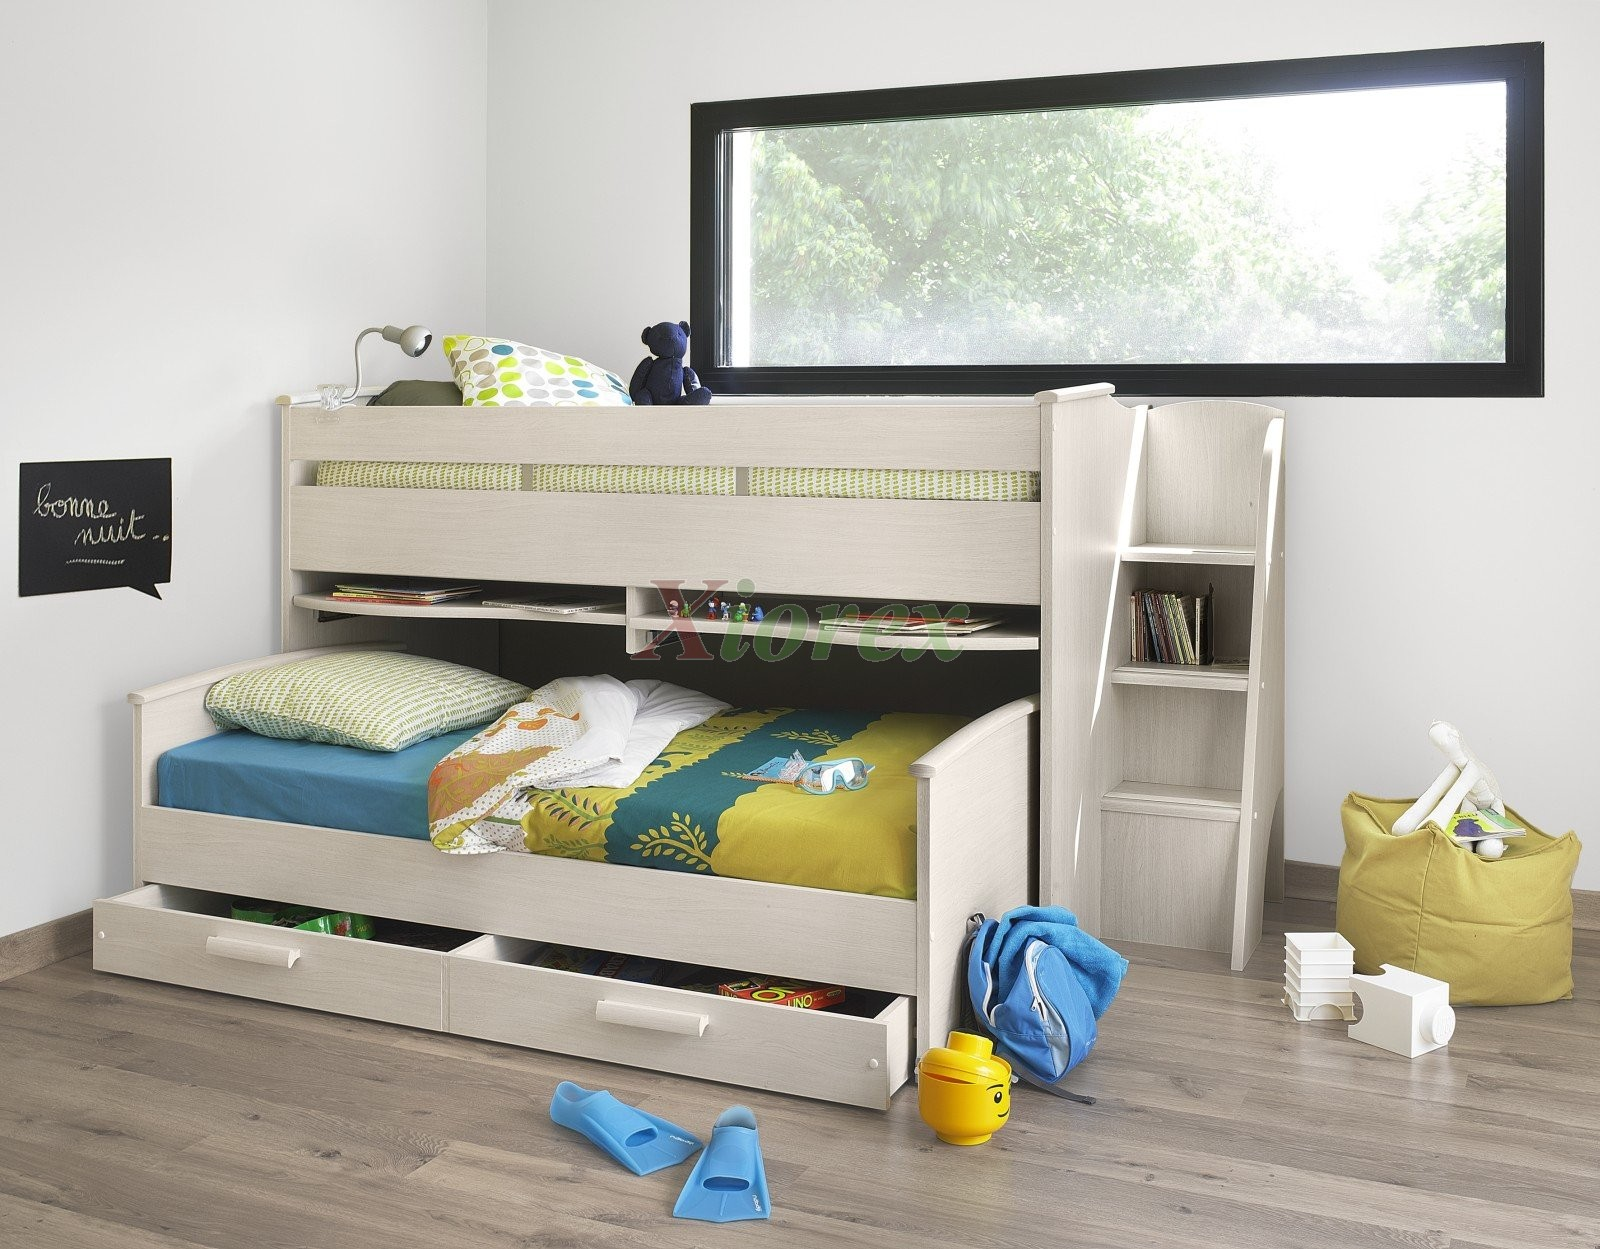 Medium image of cabin bed   xiorex